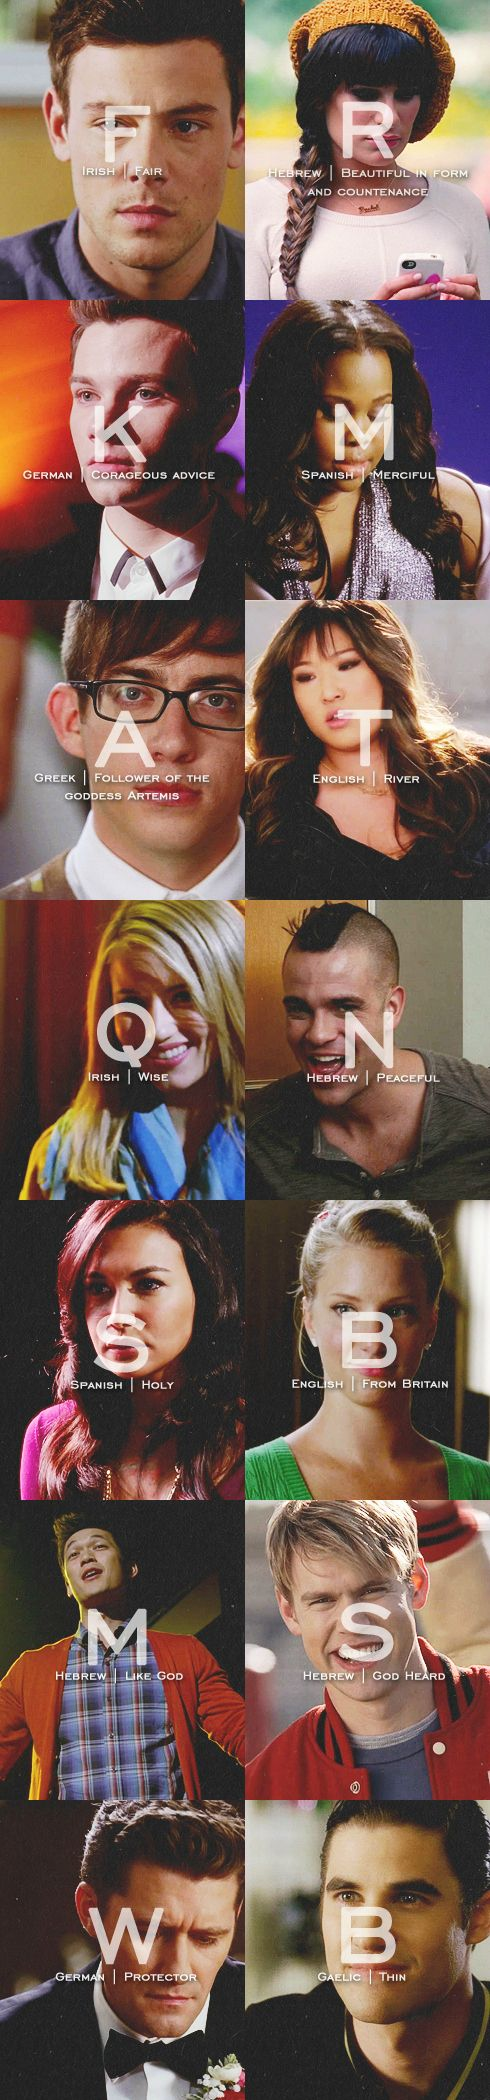 Glee characters + the origin and meaning of their name